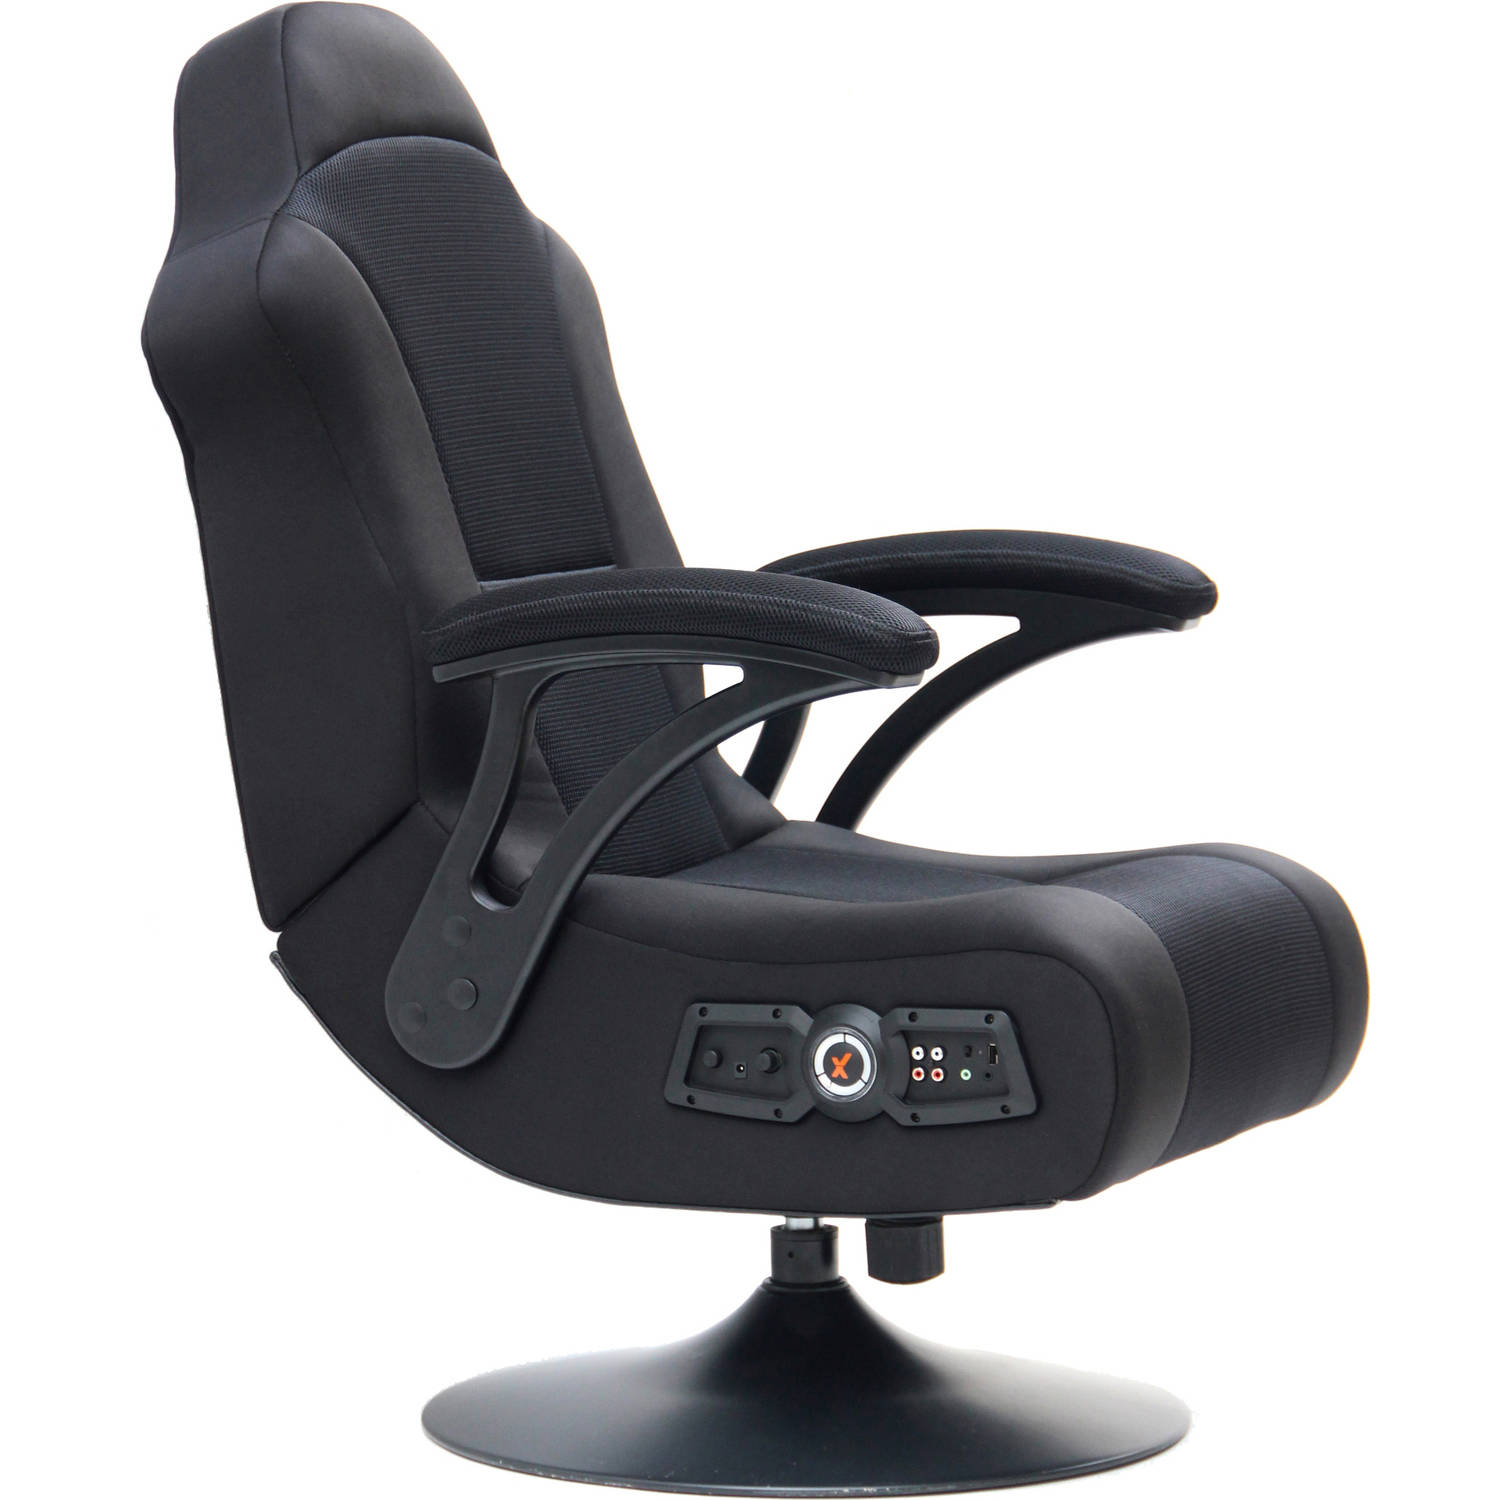 X-PRO 300 Pedestal Gaming Chair with Bluetooth Technology